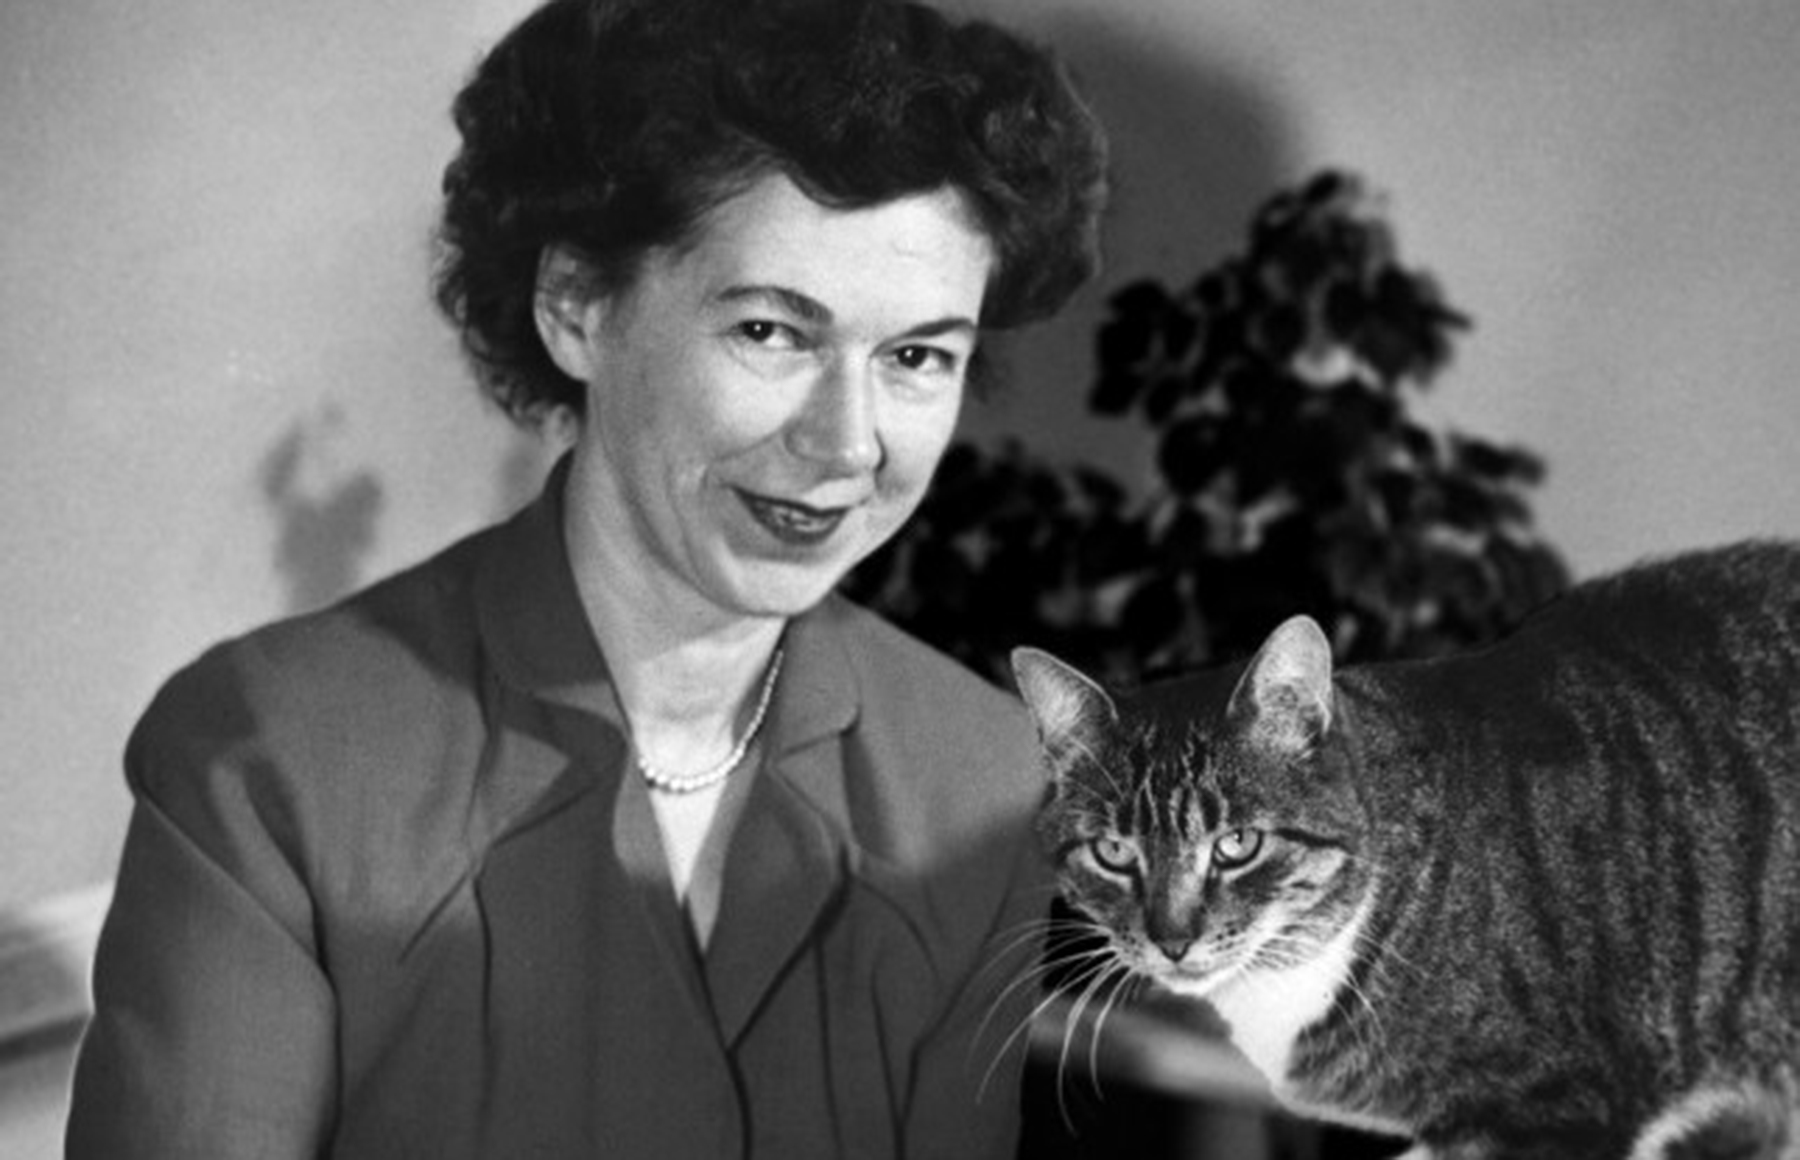 A warm 'thank you' to Beverly Cleary, my childhood inspiration